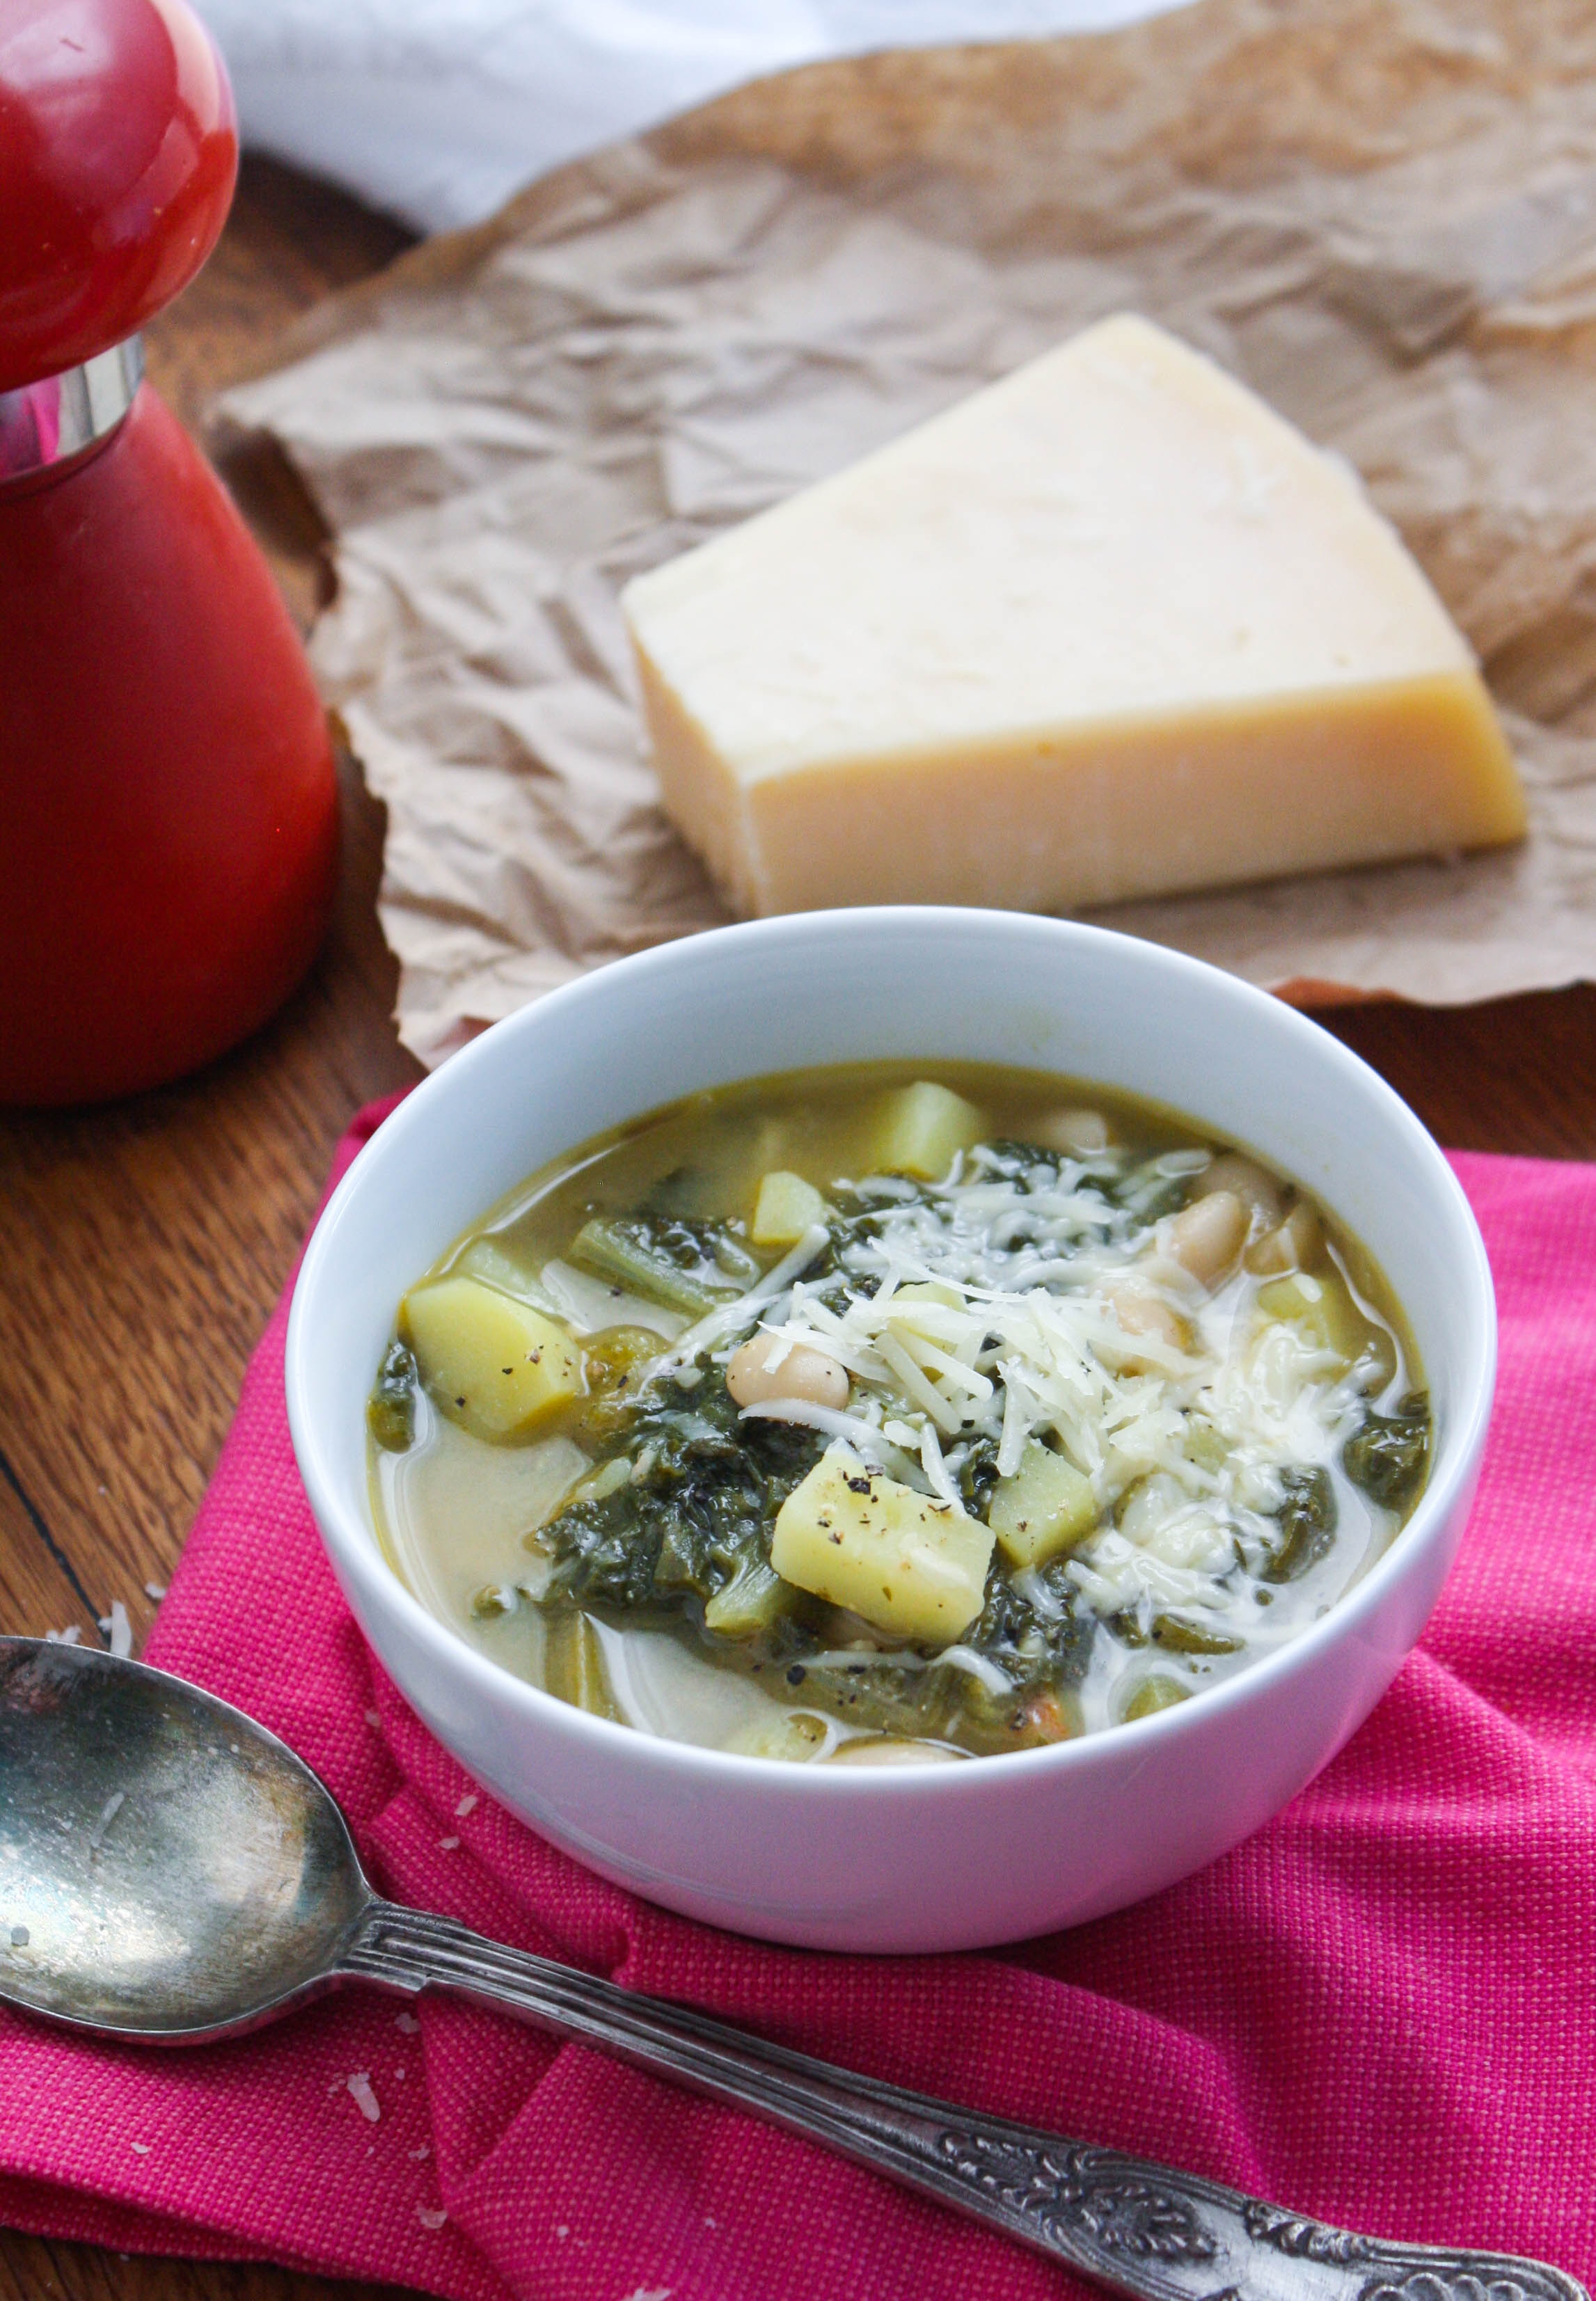 Hearty Escarole Soup with Pancetta is a tasty and hearty soup for any night of the week. Sprinkle some Parmesan cheese over the top of this soup for part of a lovely meal.